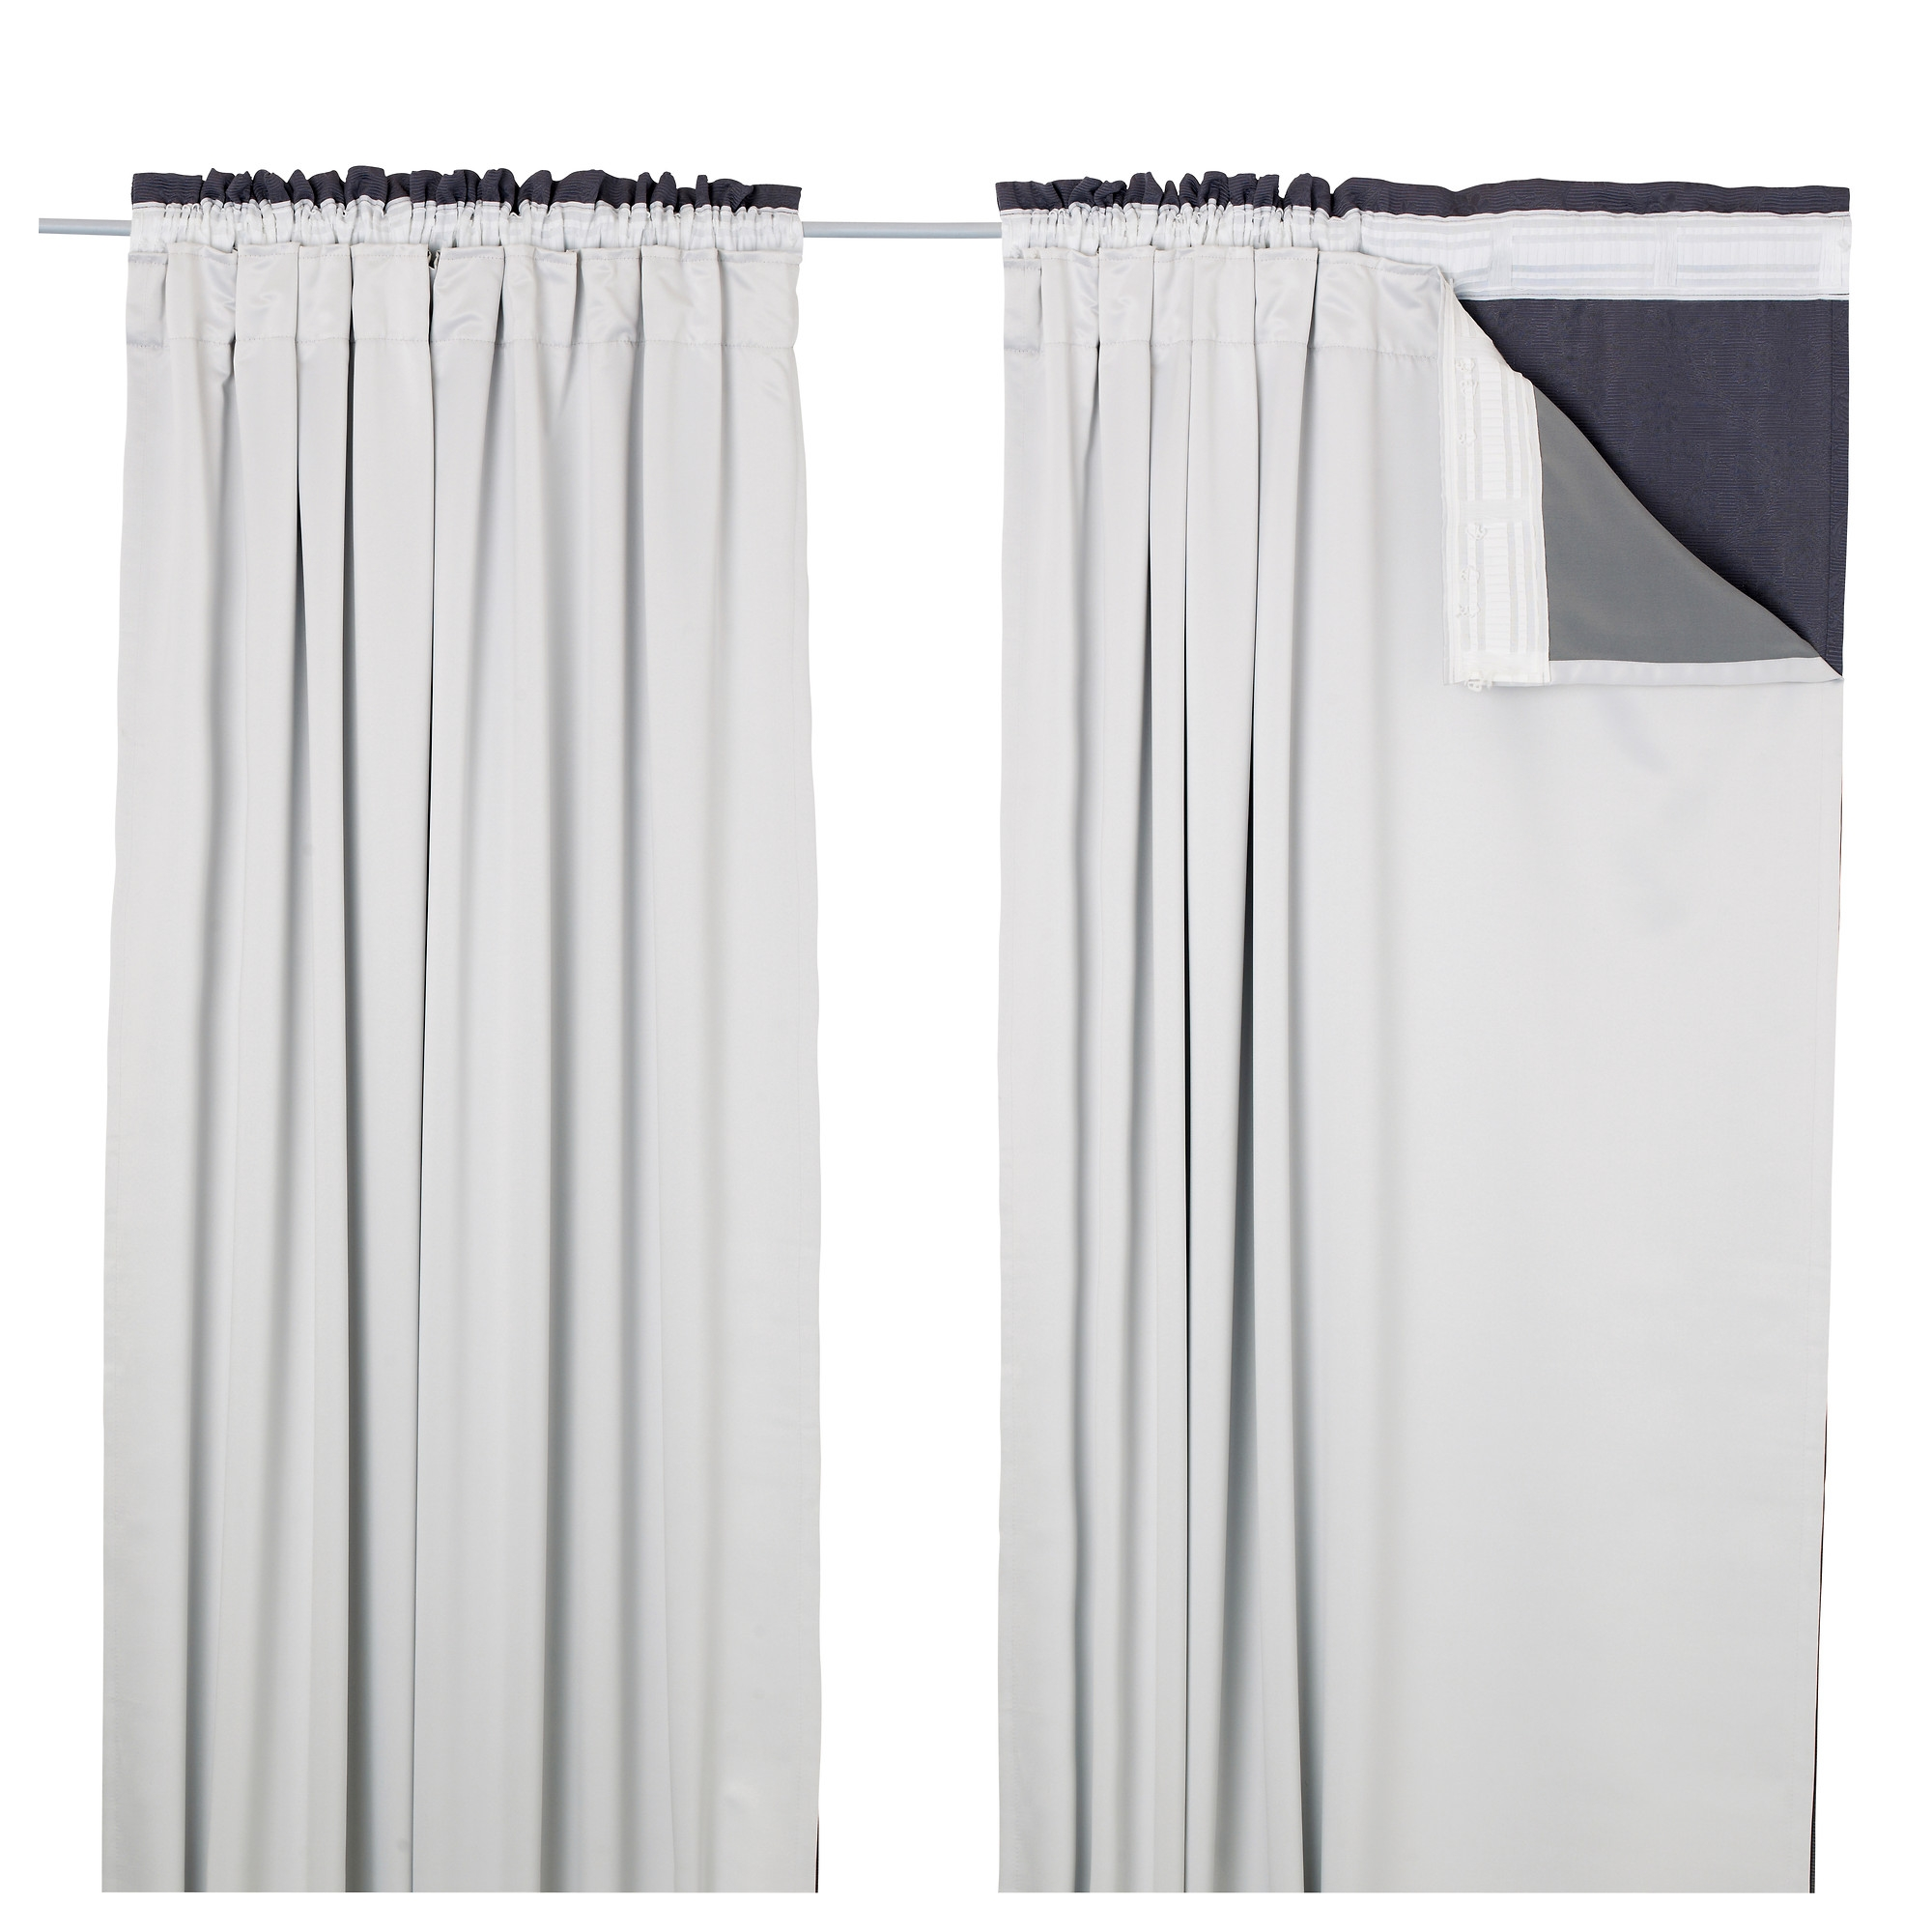 Glansnva Curtain Liners 1 Pair 56×94 Ikea Throughout White Curtains With Blackout Lining (Image 3 of 15)